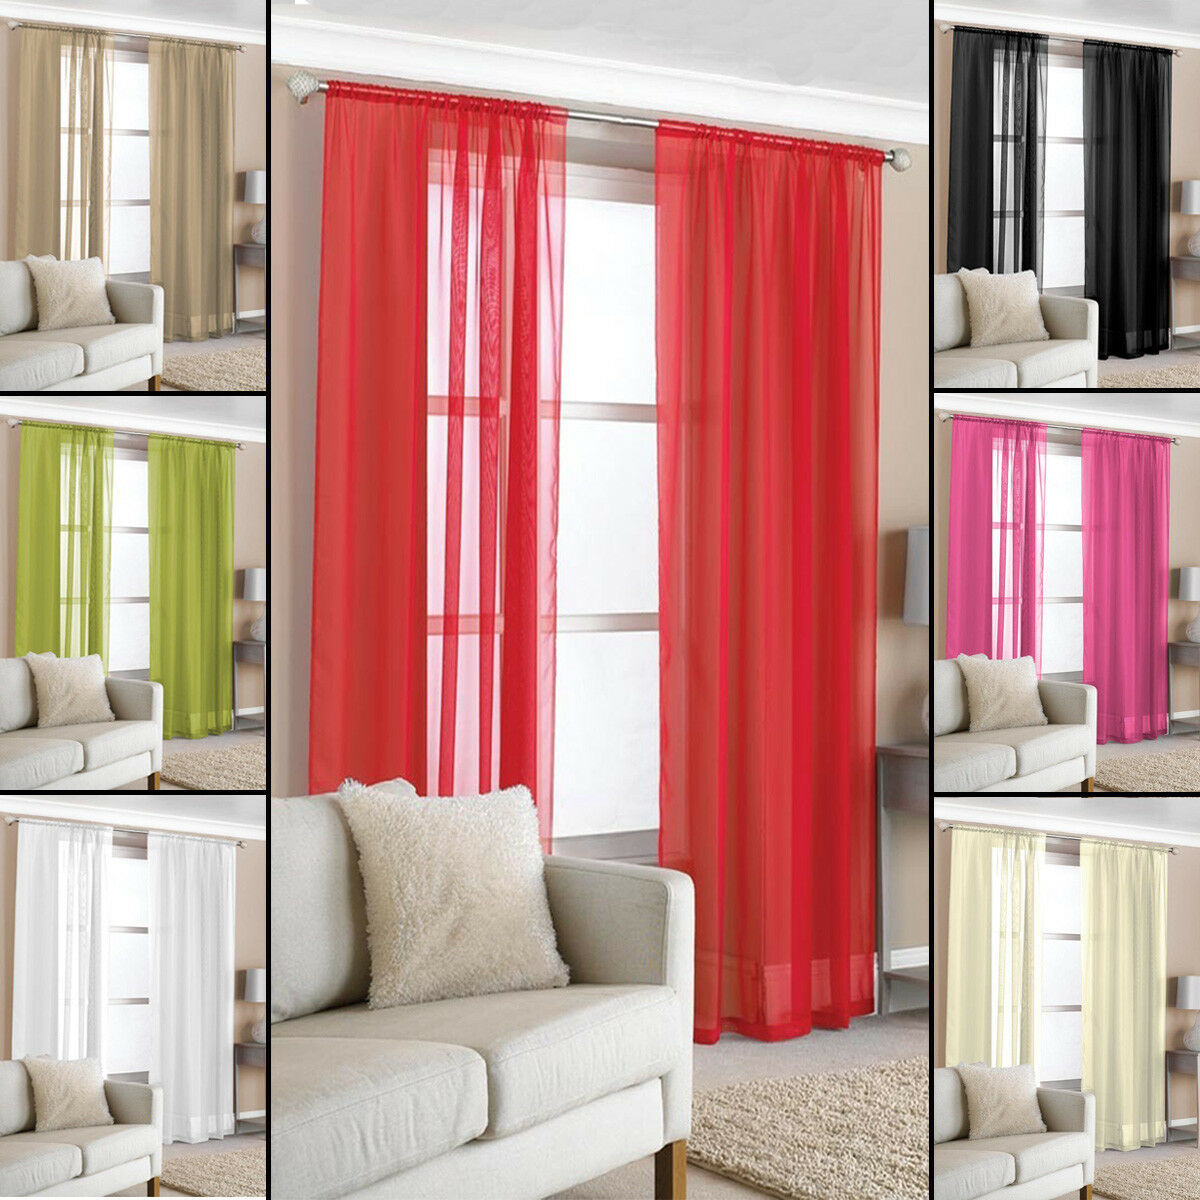 curtains - 2 Slot Top Voile Net Panels, Voiles Curtains Pair, Rod Many Sizes & Colours